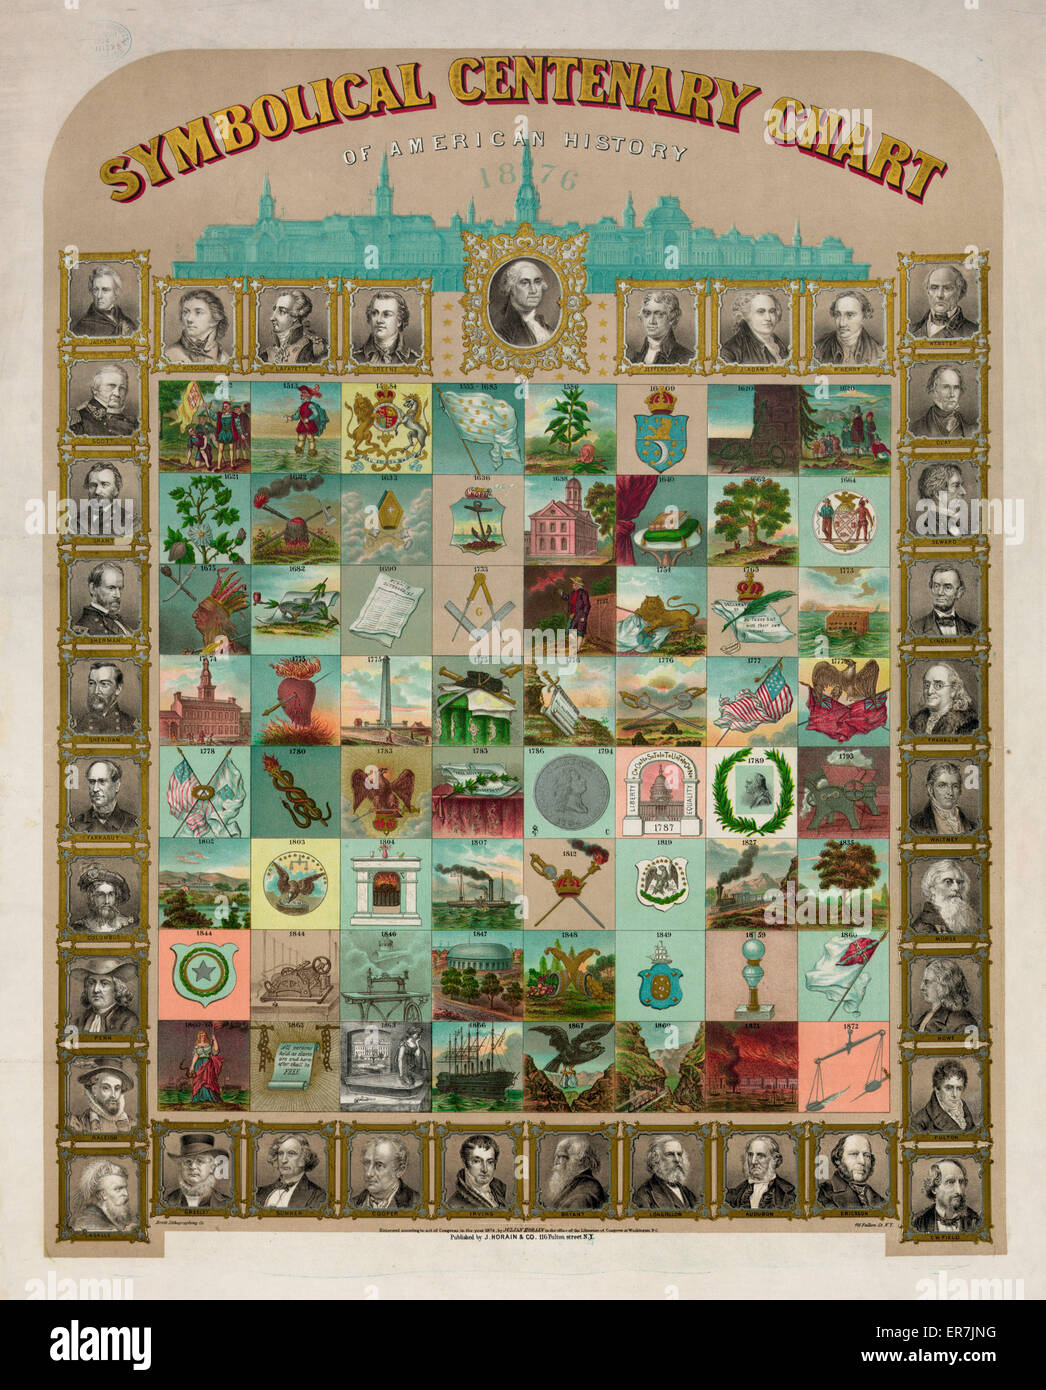 Symbolical centenary chart of American history 1876. Date c1874. - Stock Image